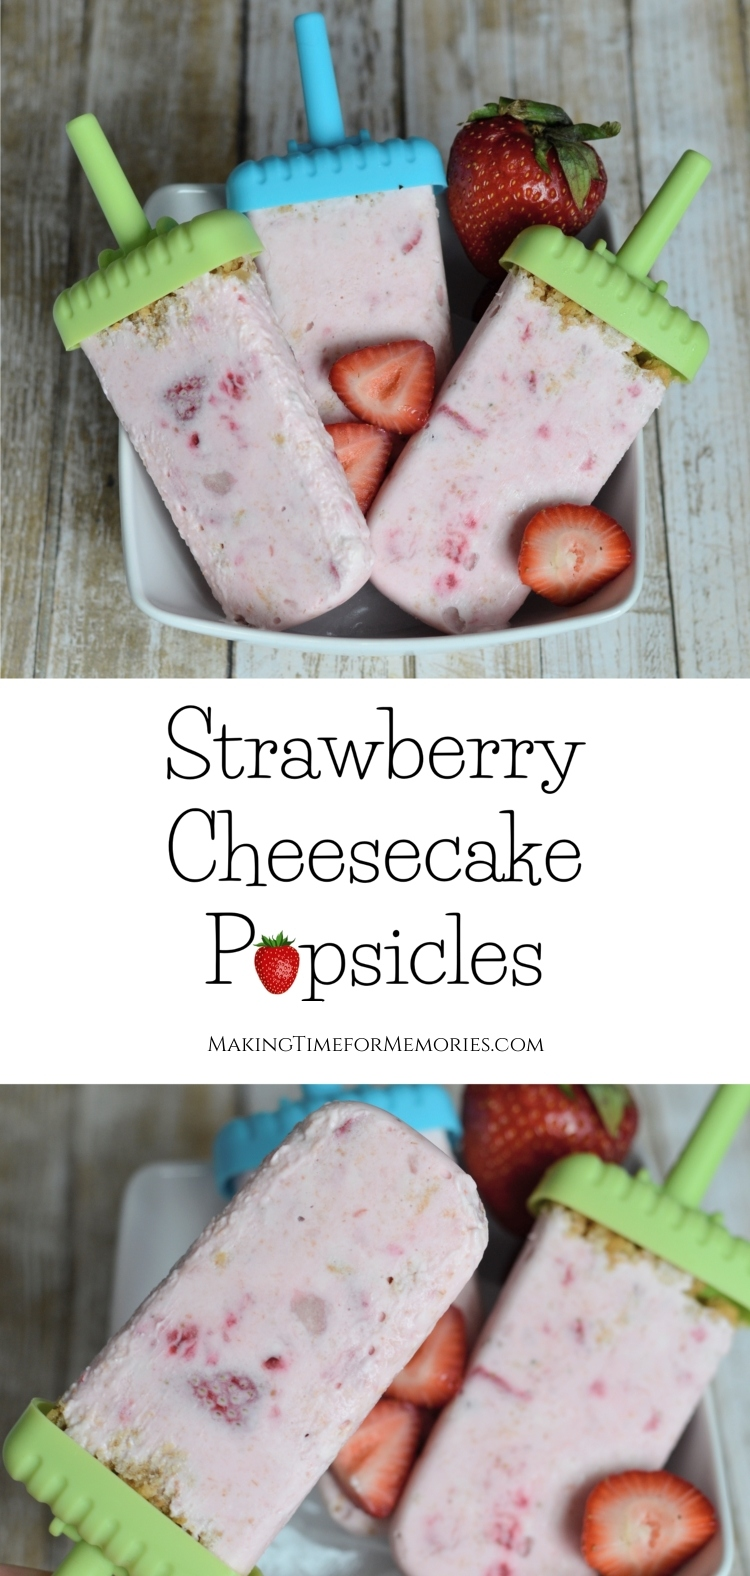 Strawberry Cheesecake Popsicles   #popsicles #strawberrycheesecake